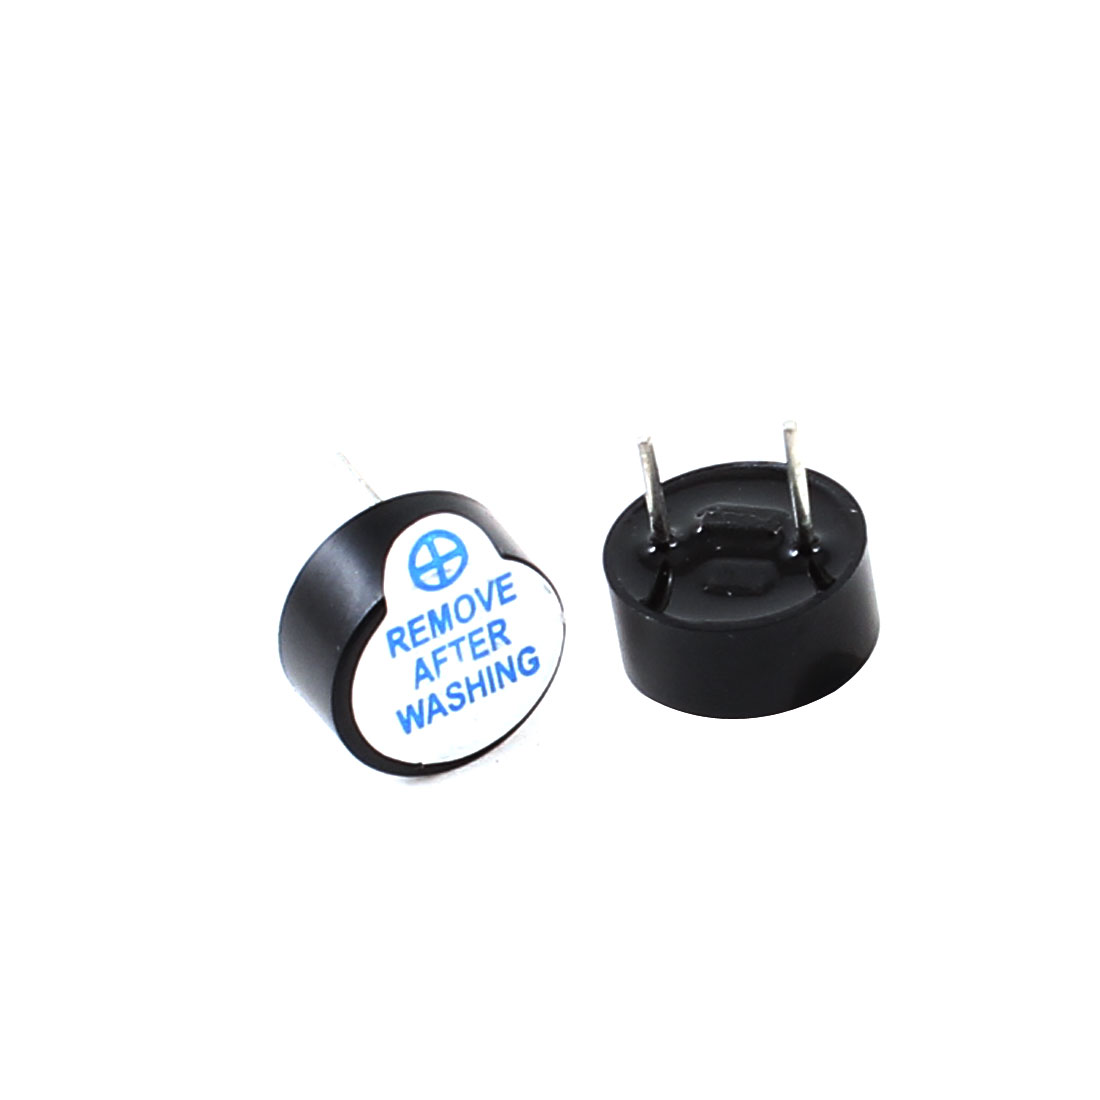 2 Pcs DC 5V 2Pins Cylinder Electronic Continuous Sound Buzzer 9mmx4.5mm